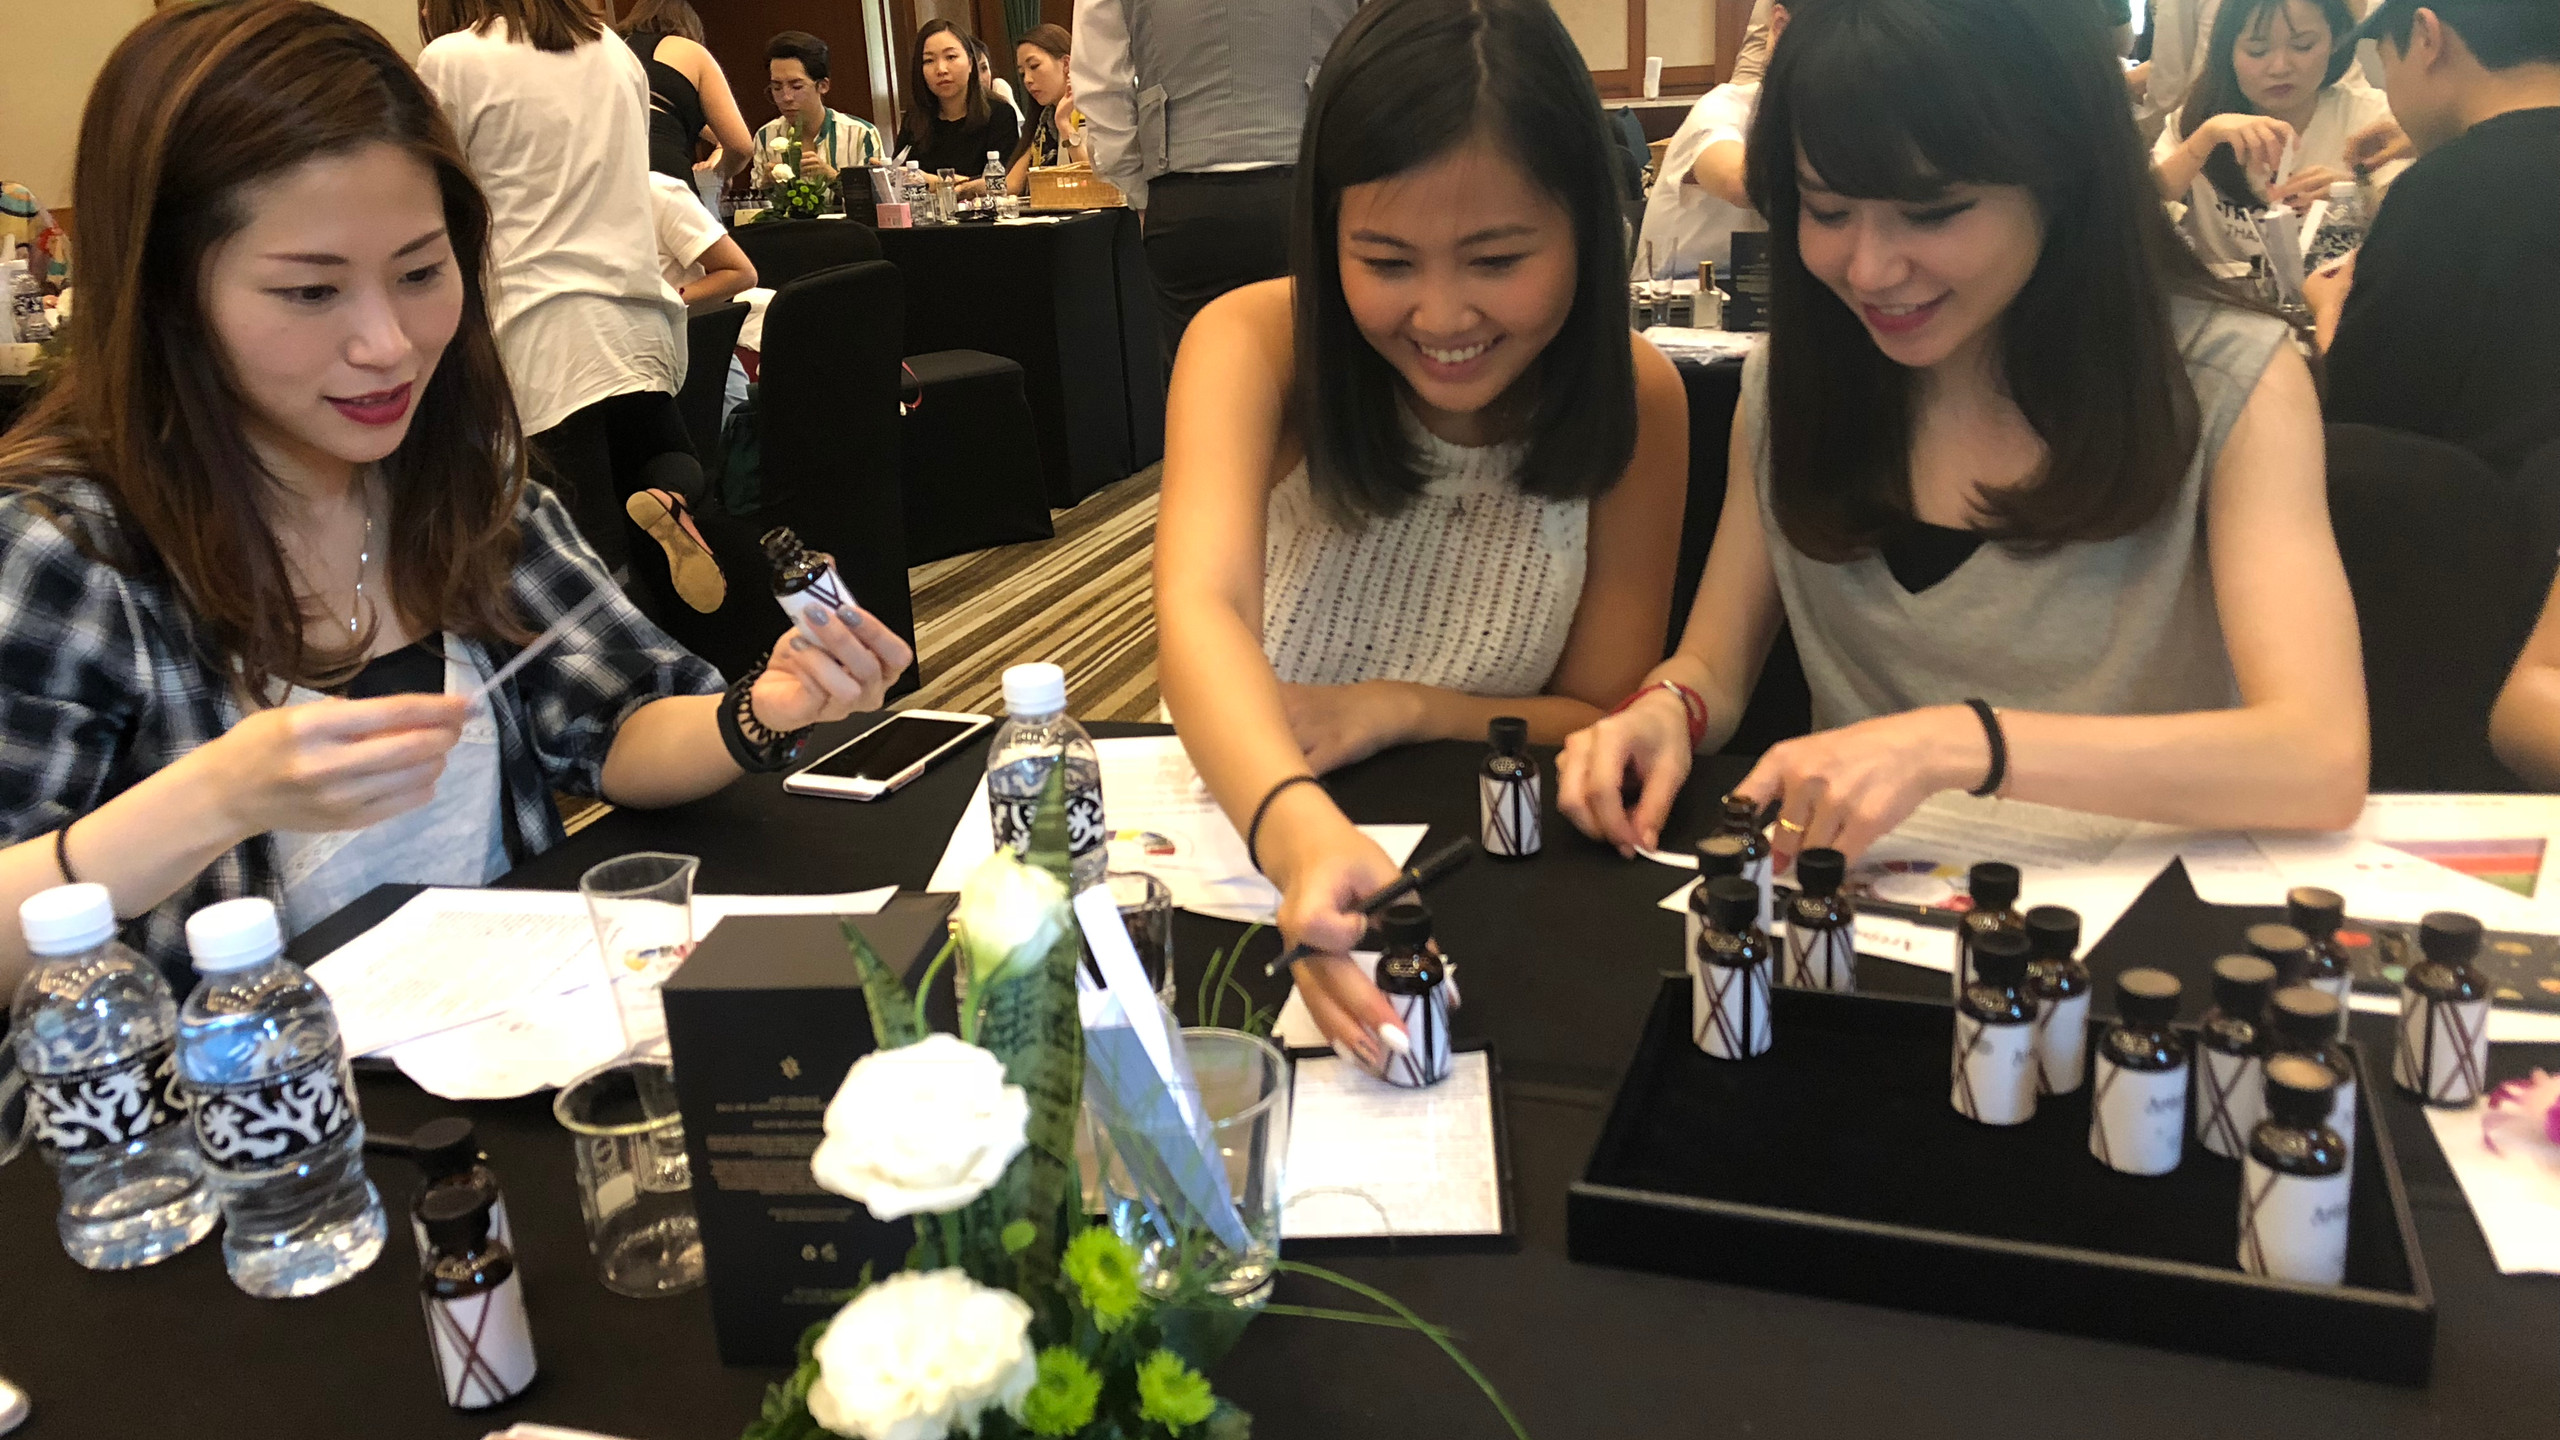 """Perfumer Challenge"" is the perfect activity to inspire you and your team's creativity, communication, presentation, collaboration skills by scent."